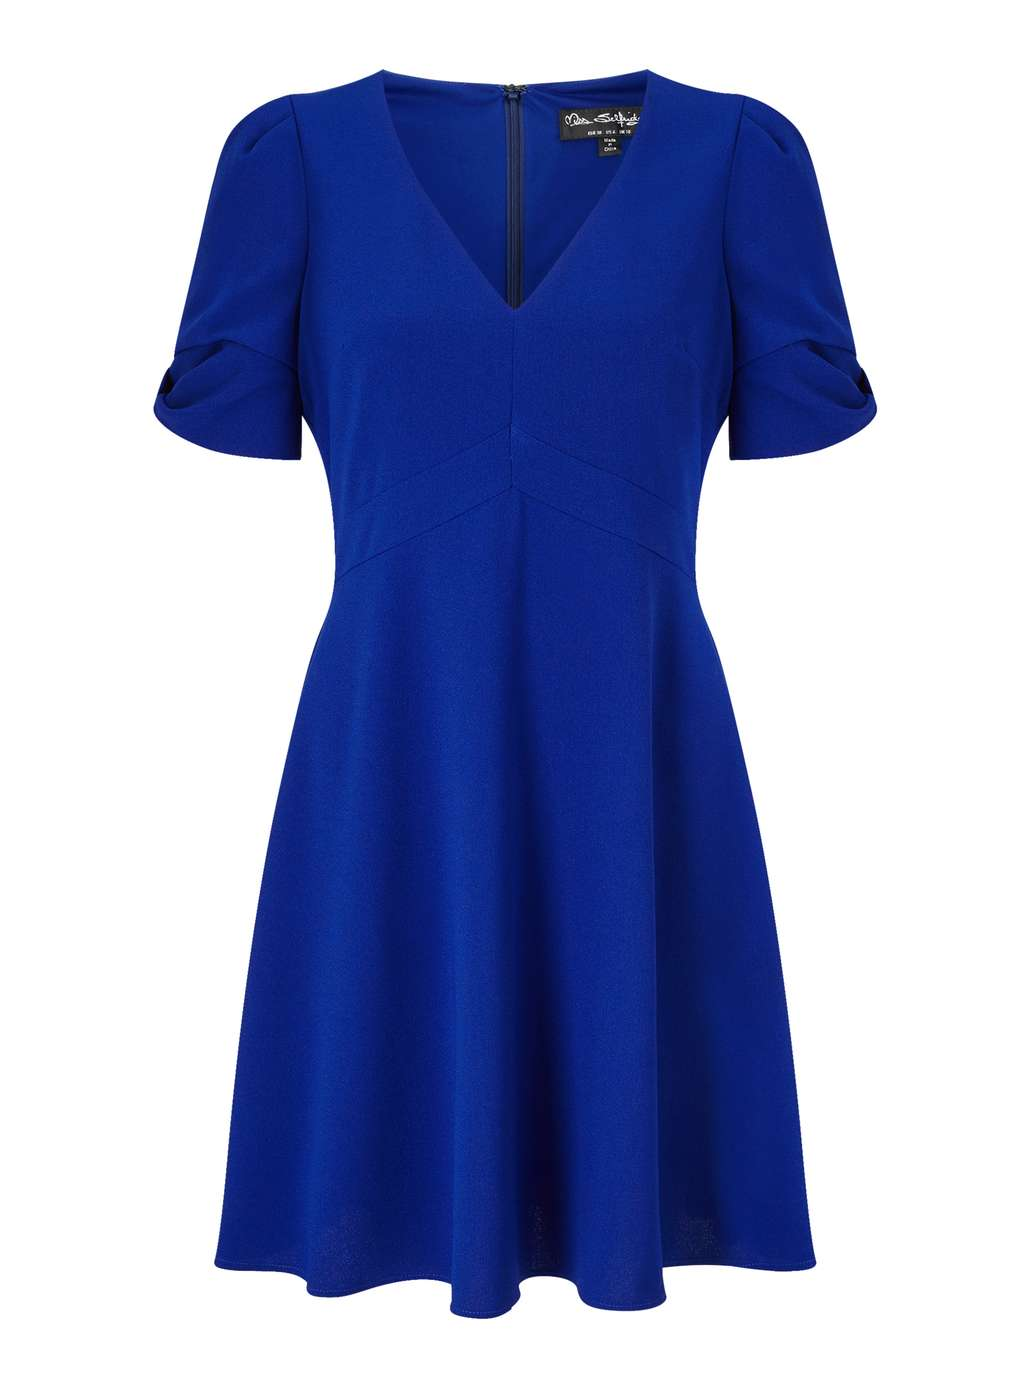 Miss Selfridge Bow Sleeve Dress